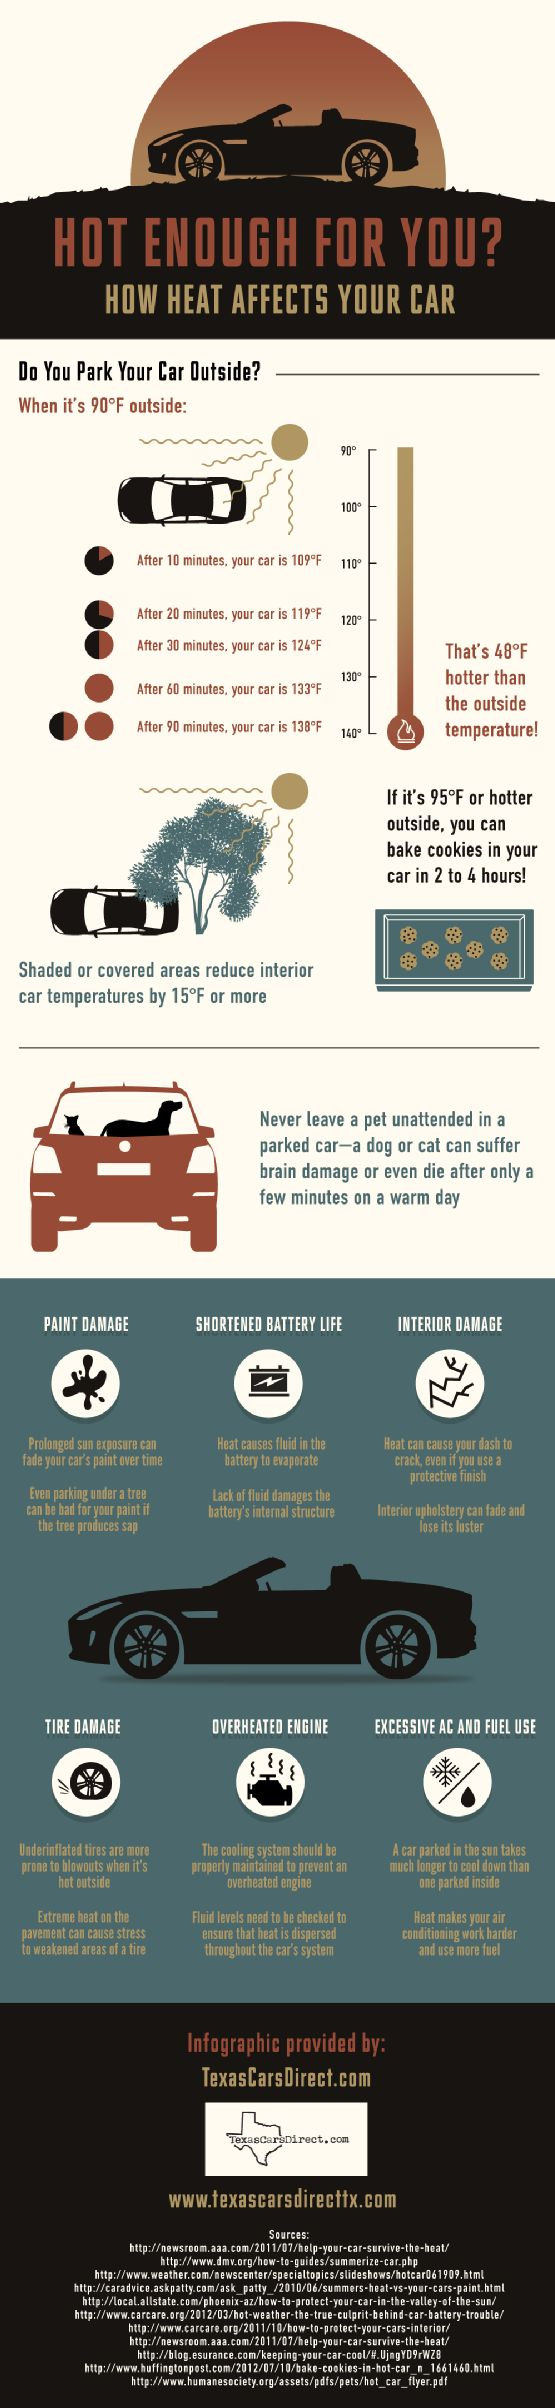 How heat affects your car